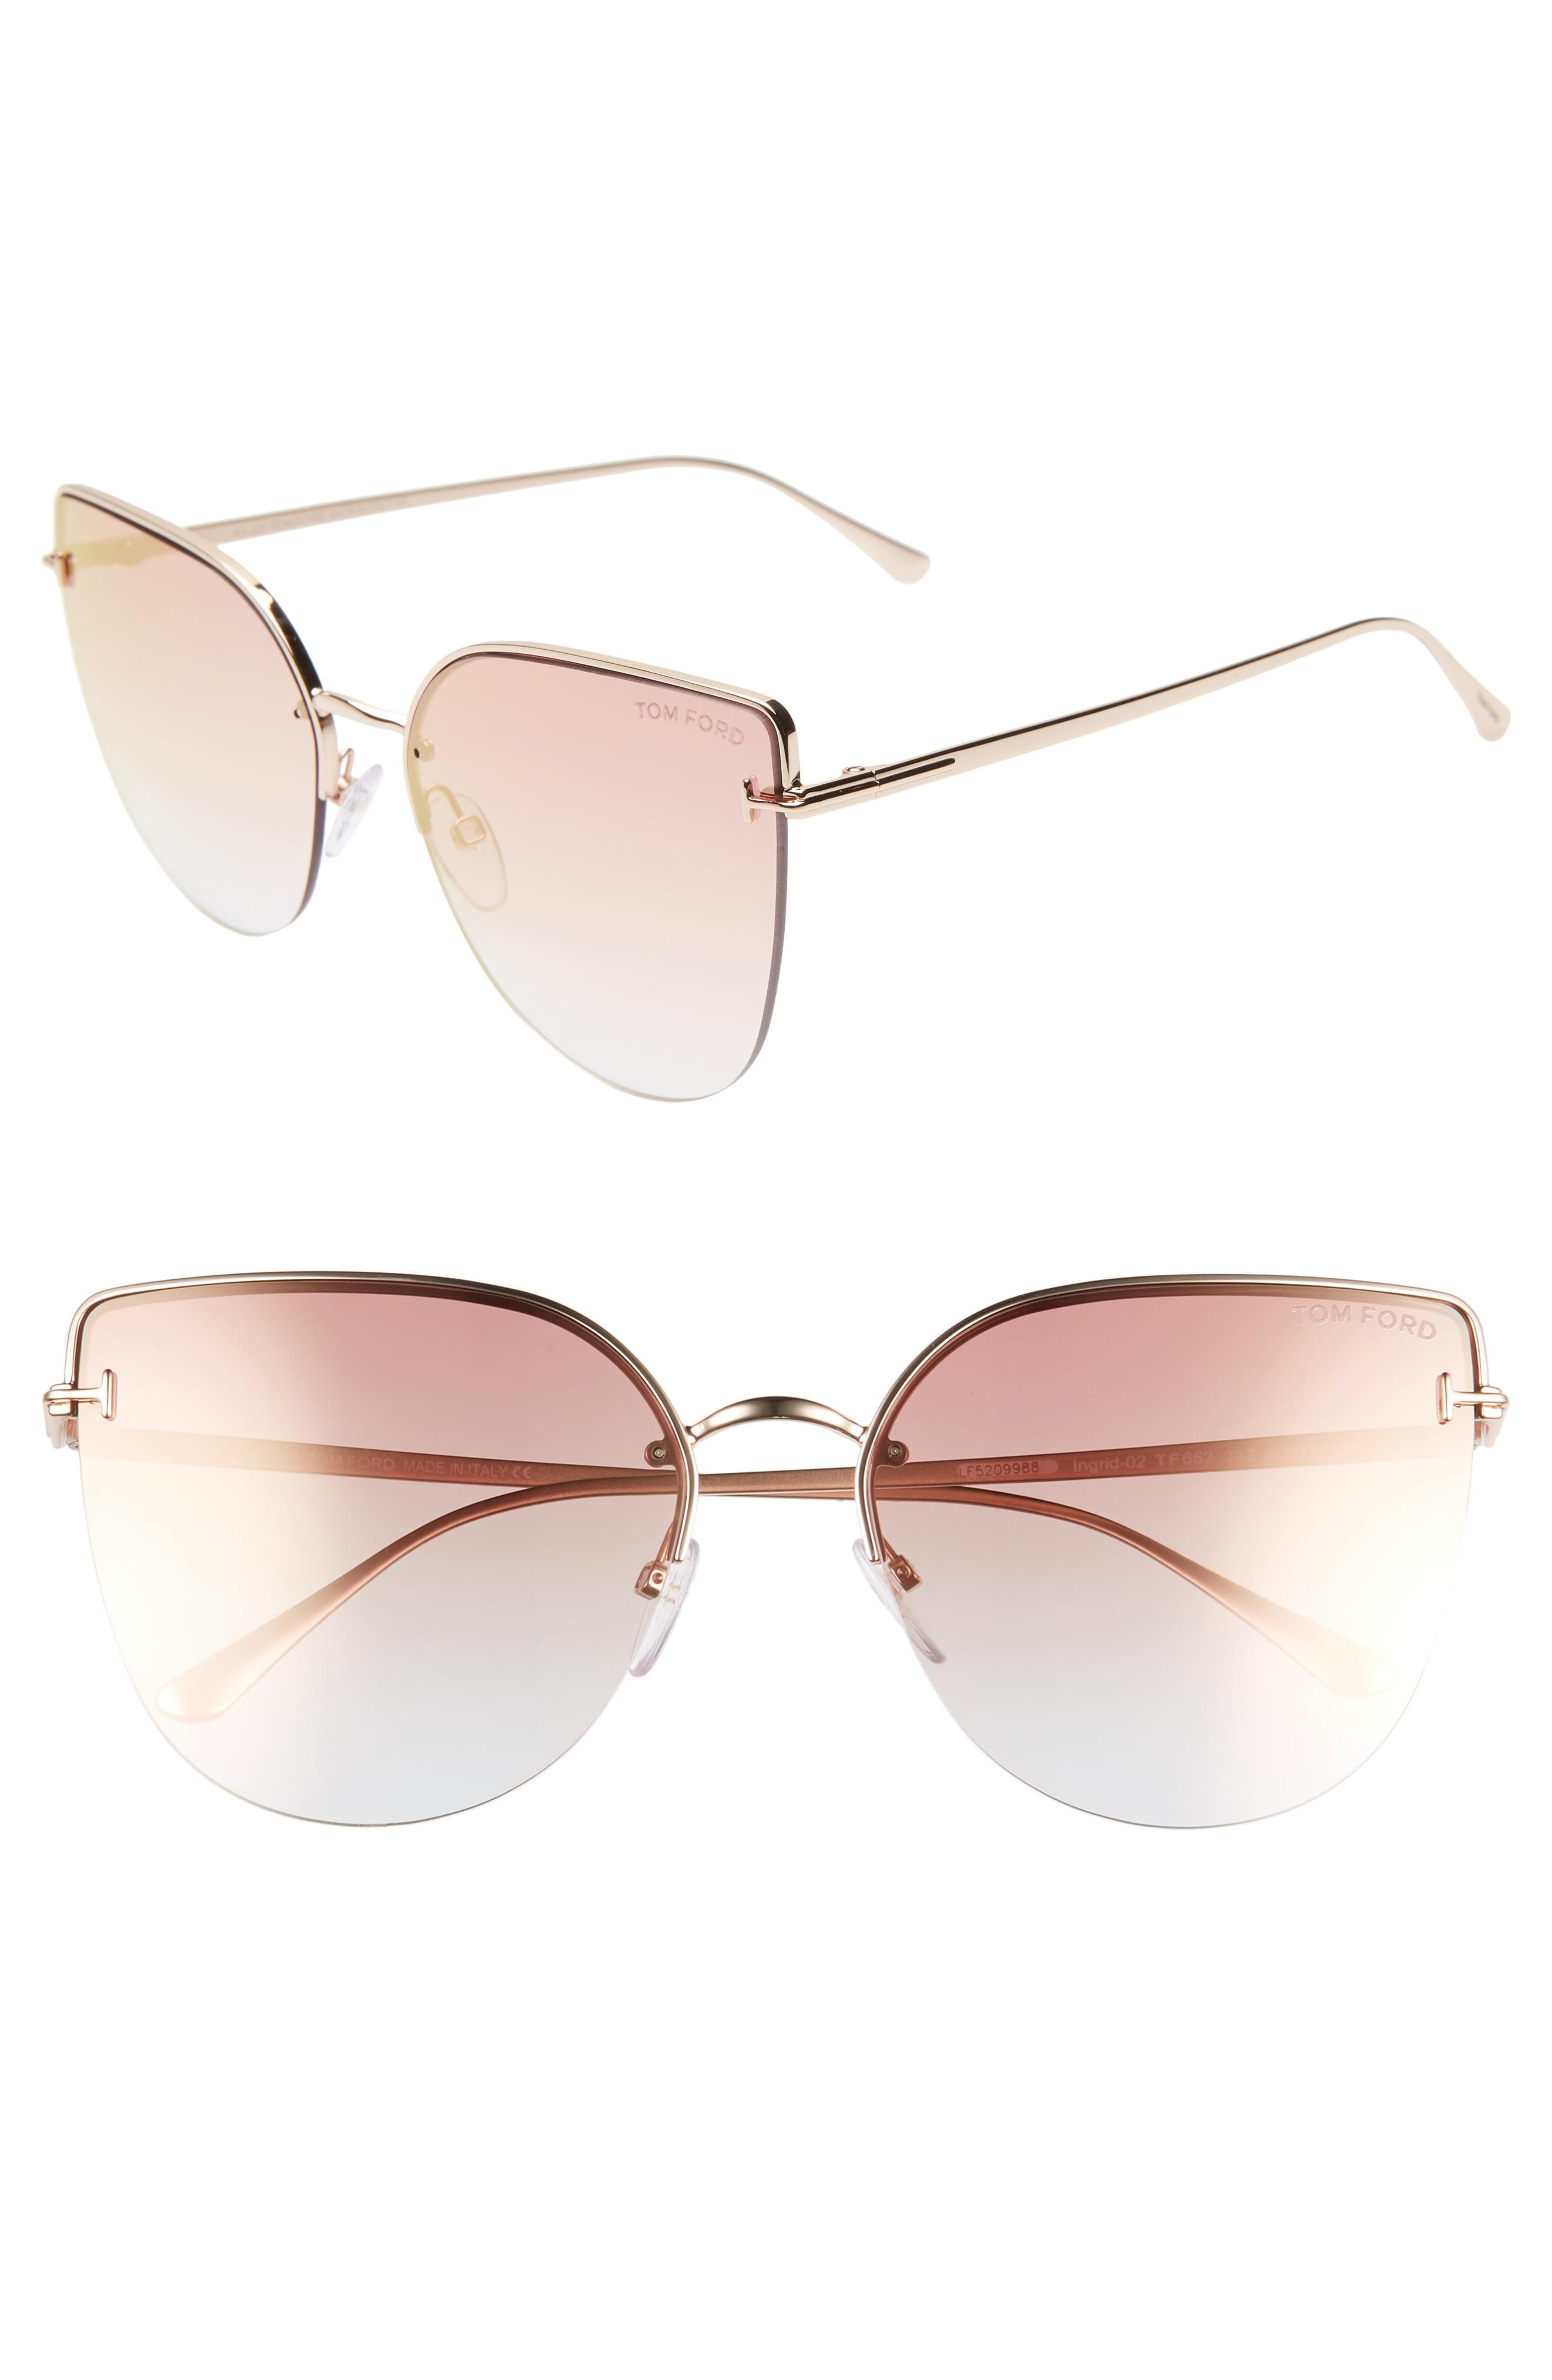 fc6db61f3262 Tom Ford - Pink Ingrid 60mm Cat Eye Sunglasses - Lyst. View fullscreen